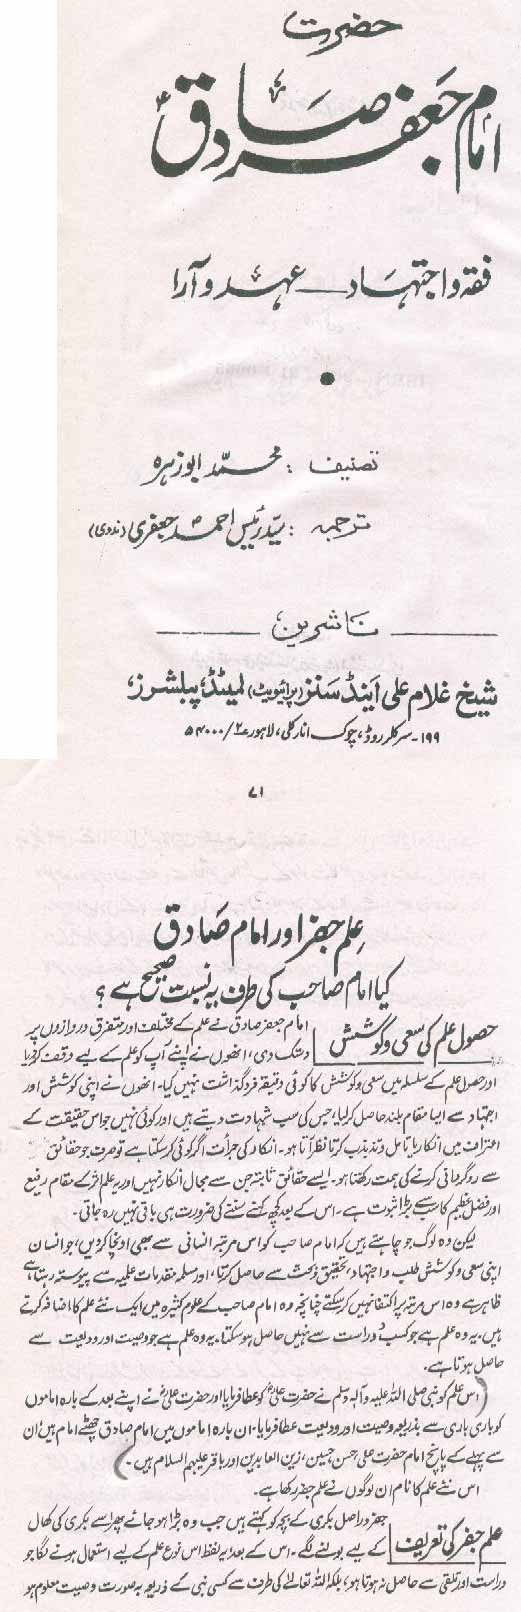 The Doctrine of Imamate from a Shi'a perspective (Part III)